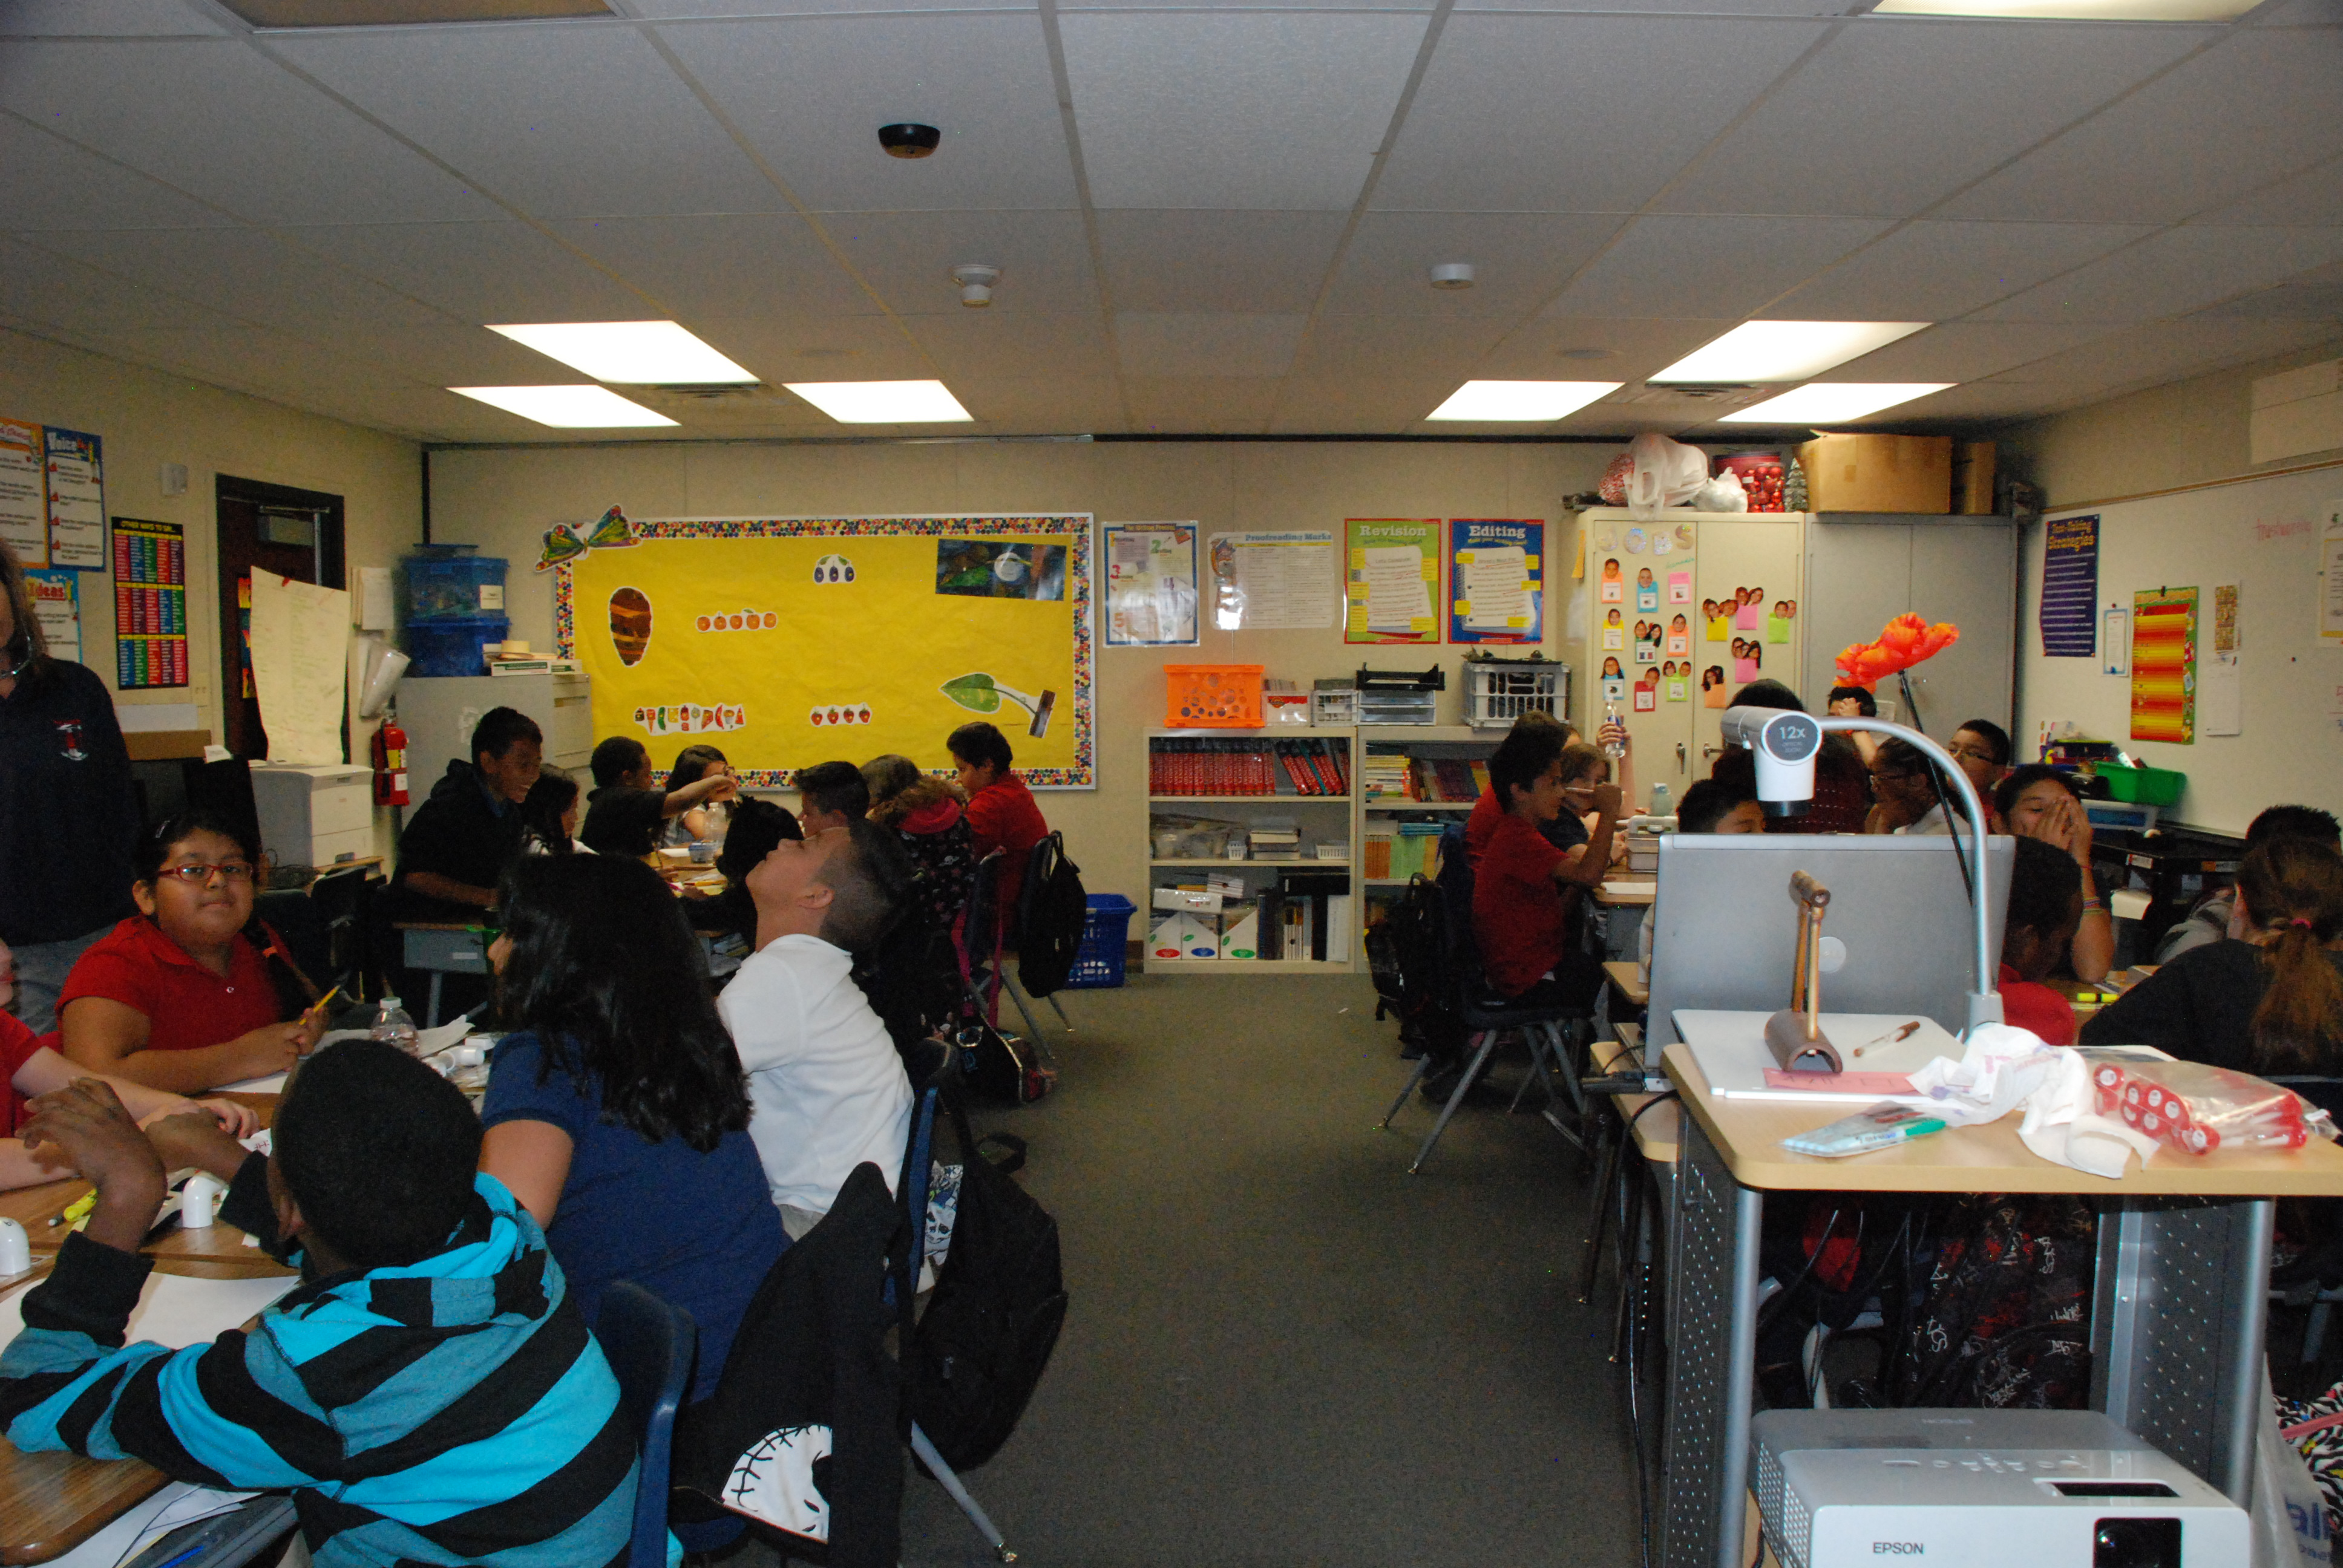 5th grade class at Ronzone Elementary